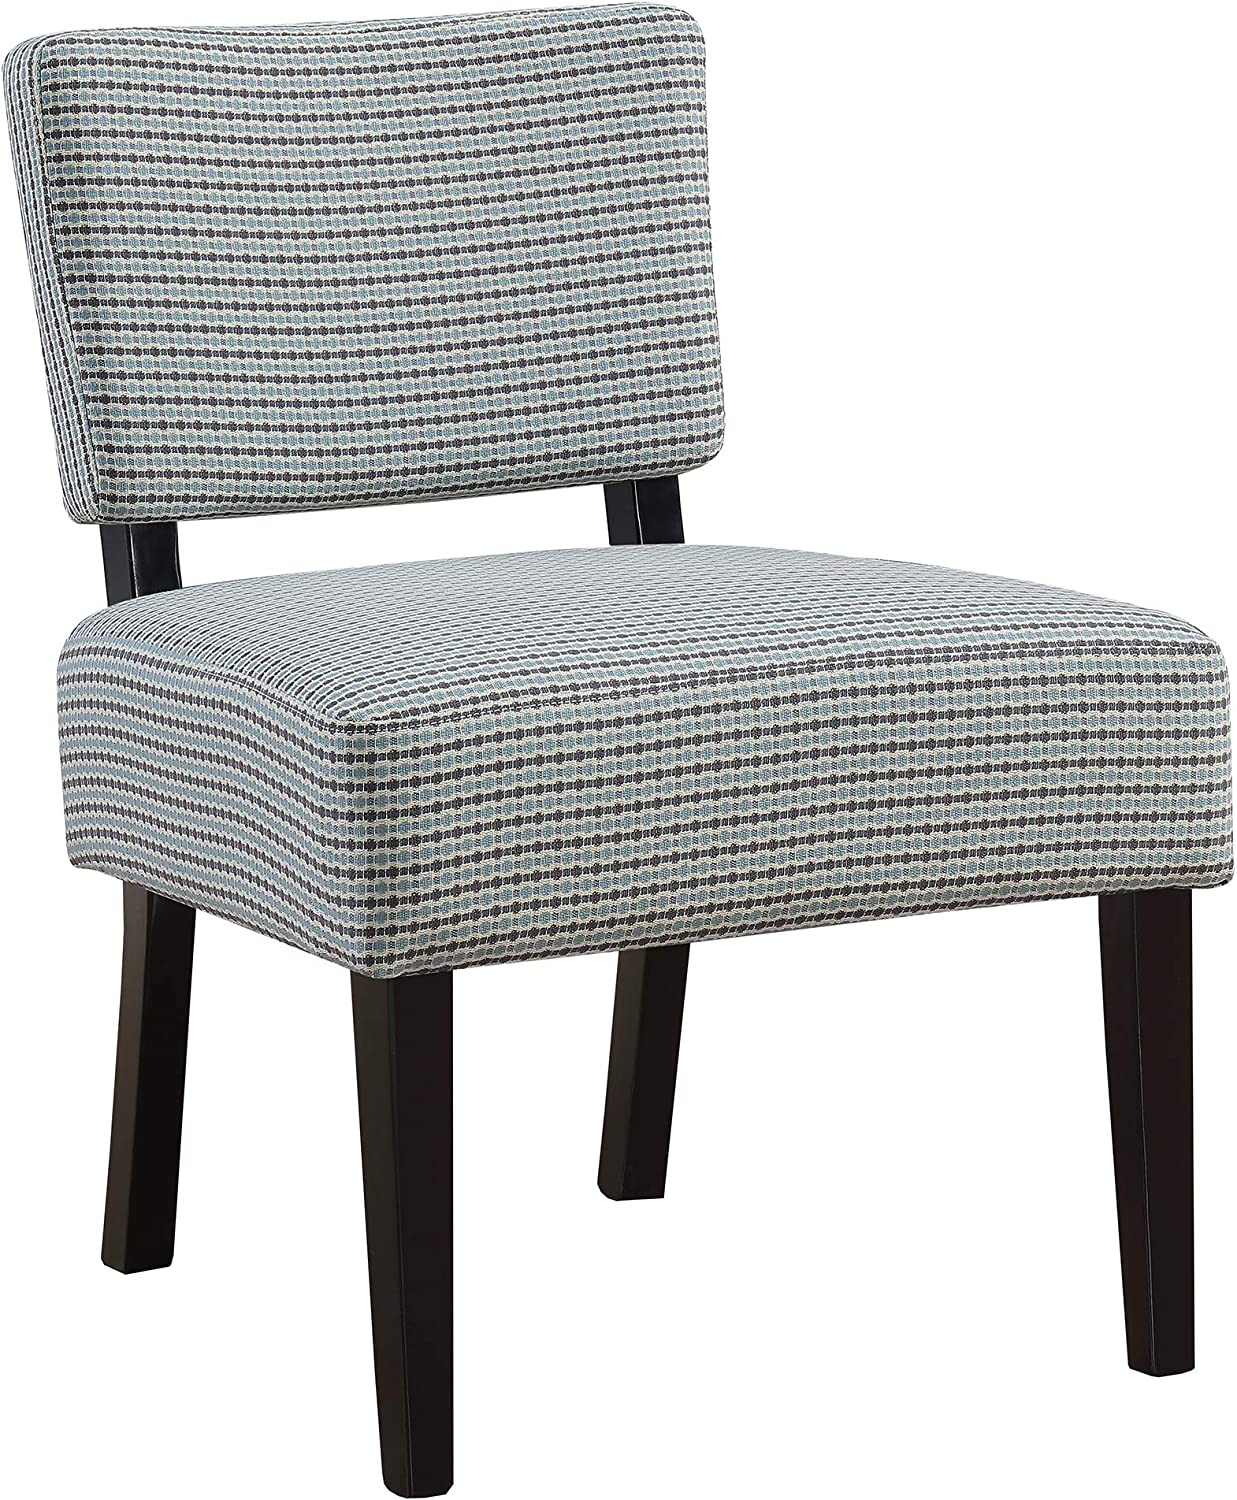 Monarch Specialties Accent Chair - Light bluee Grey Abstract Dot Fabric